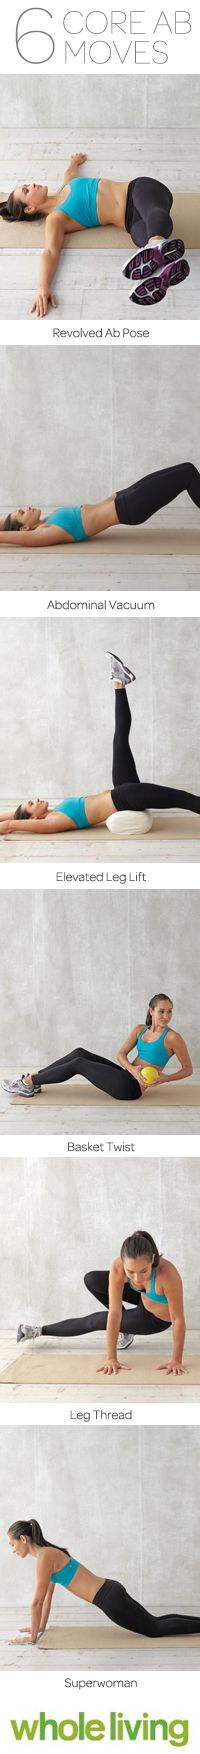 core ab moves I can do at home